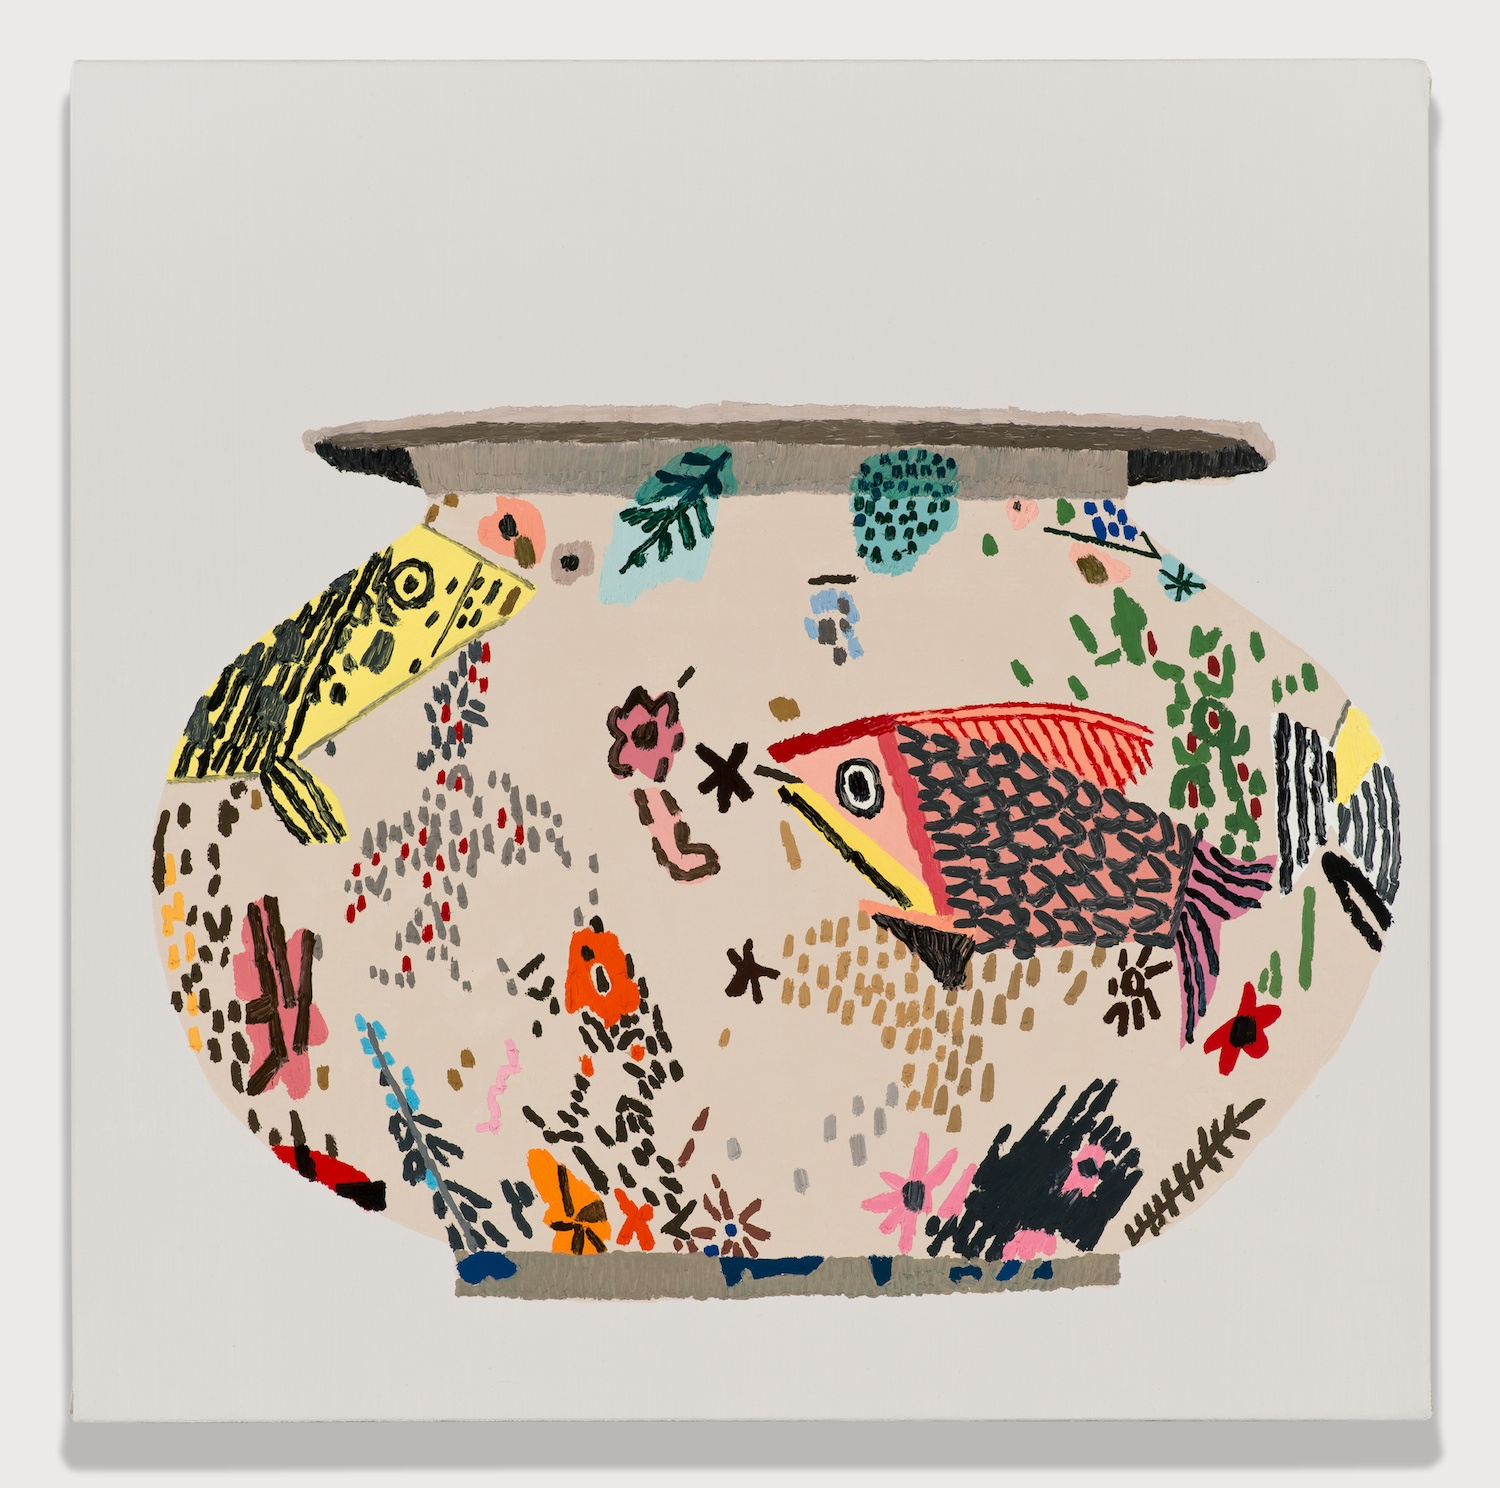 Jonas Wood  M. S. F. Fish Pot #1  2014 Oil and acrylic on linen 18h x 18w in JW182